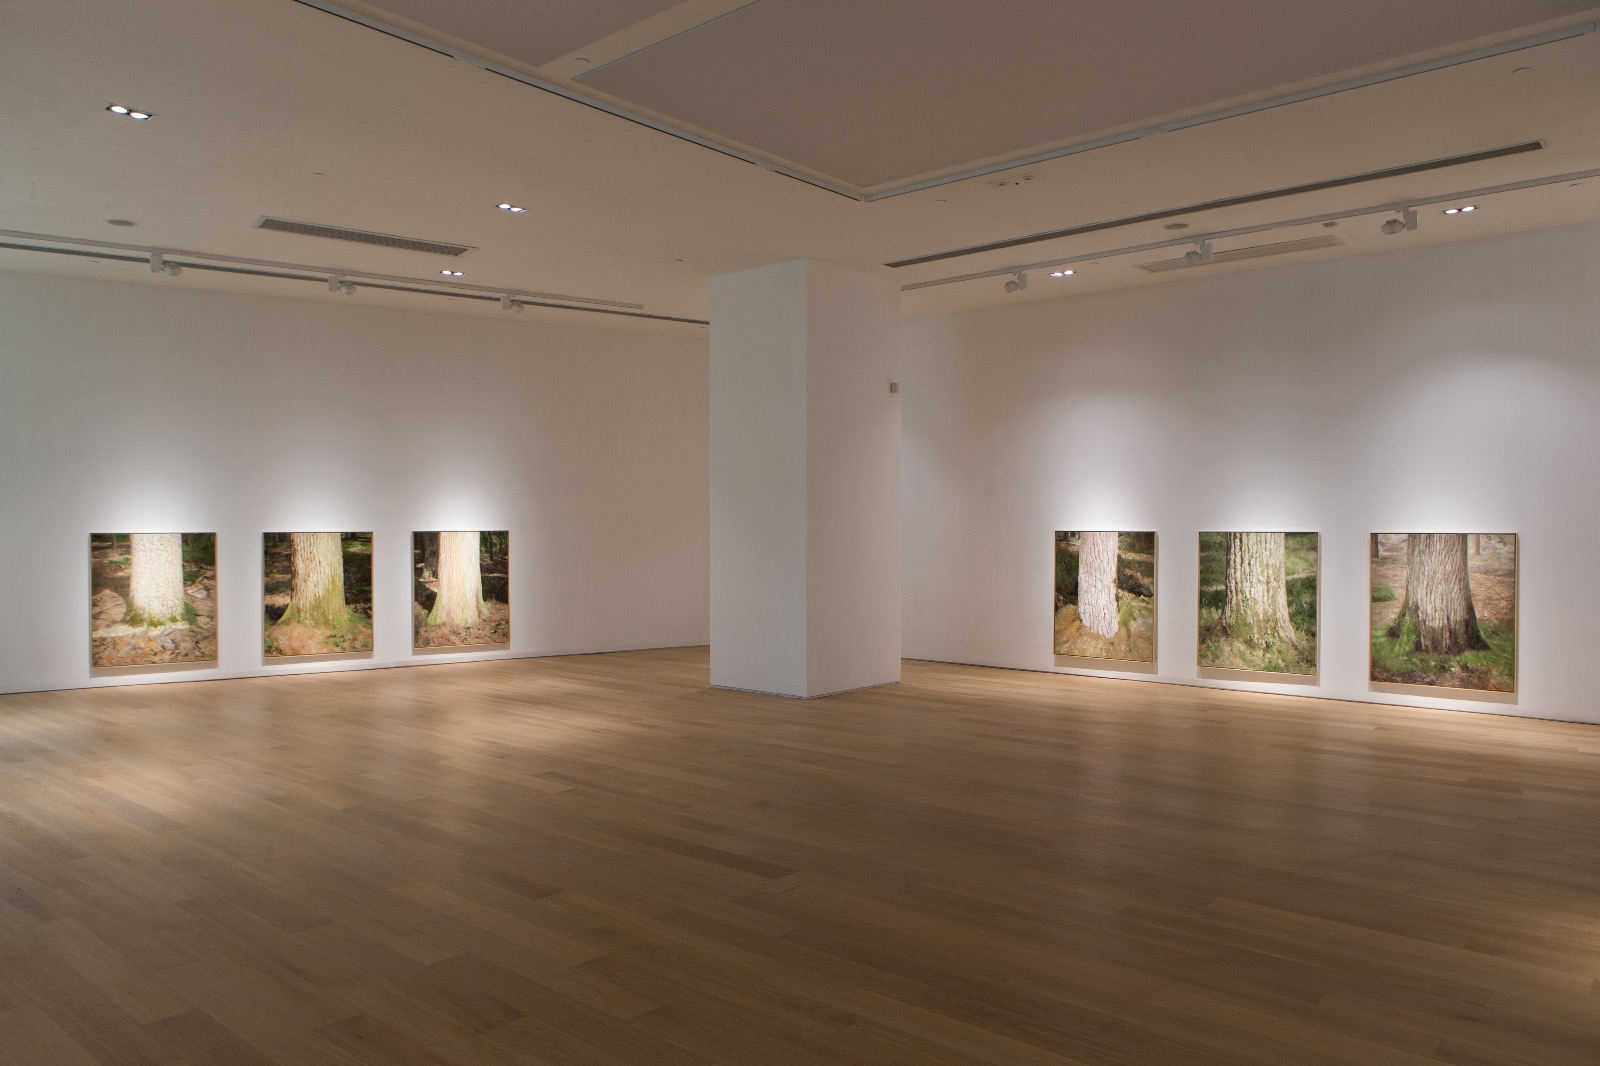 """Blouin Artinfo – """"Untitled Poems of Théodore Rousseau"""" by Natee Utarit at Tang Contemporary Art, Hong Kong"""